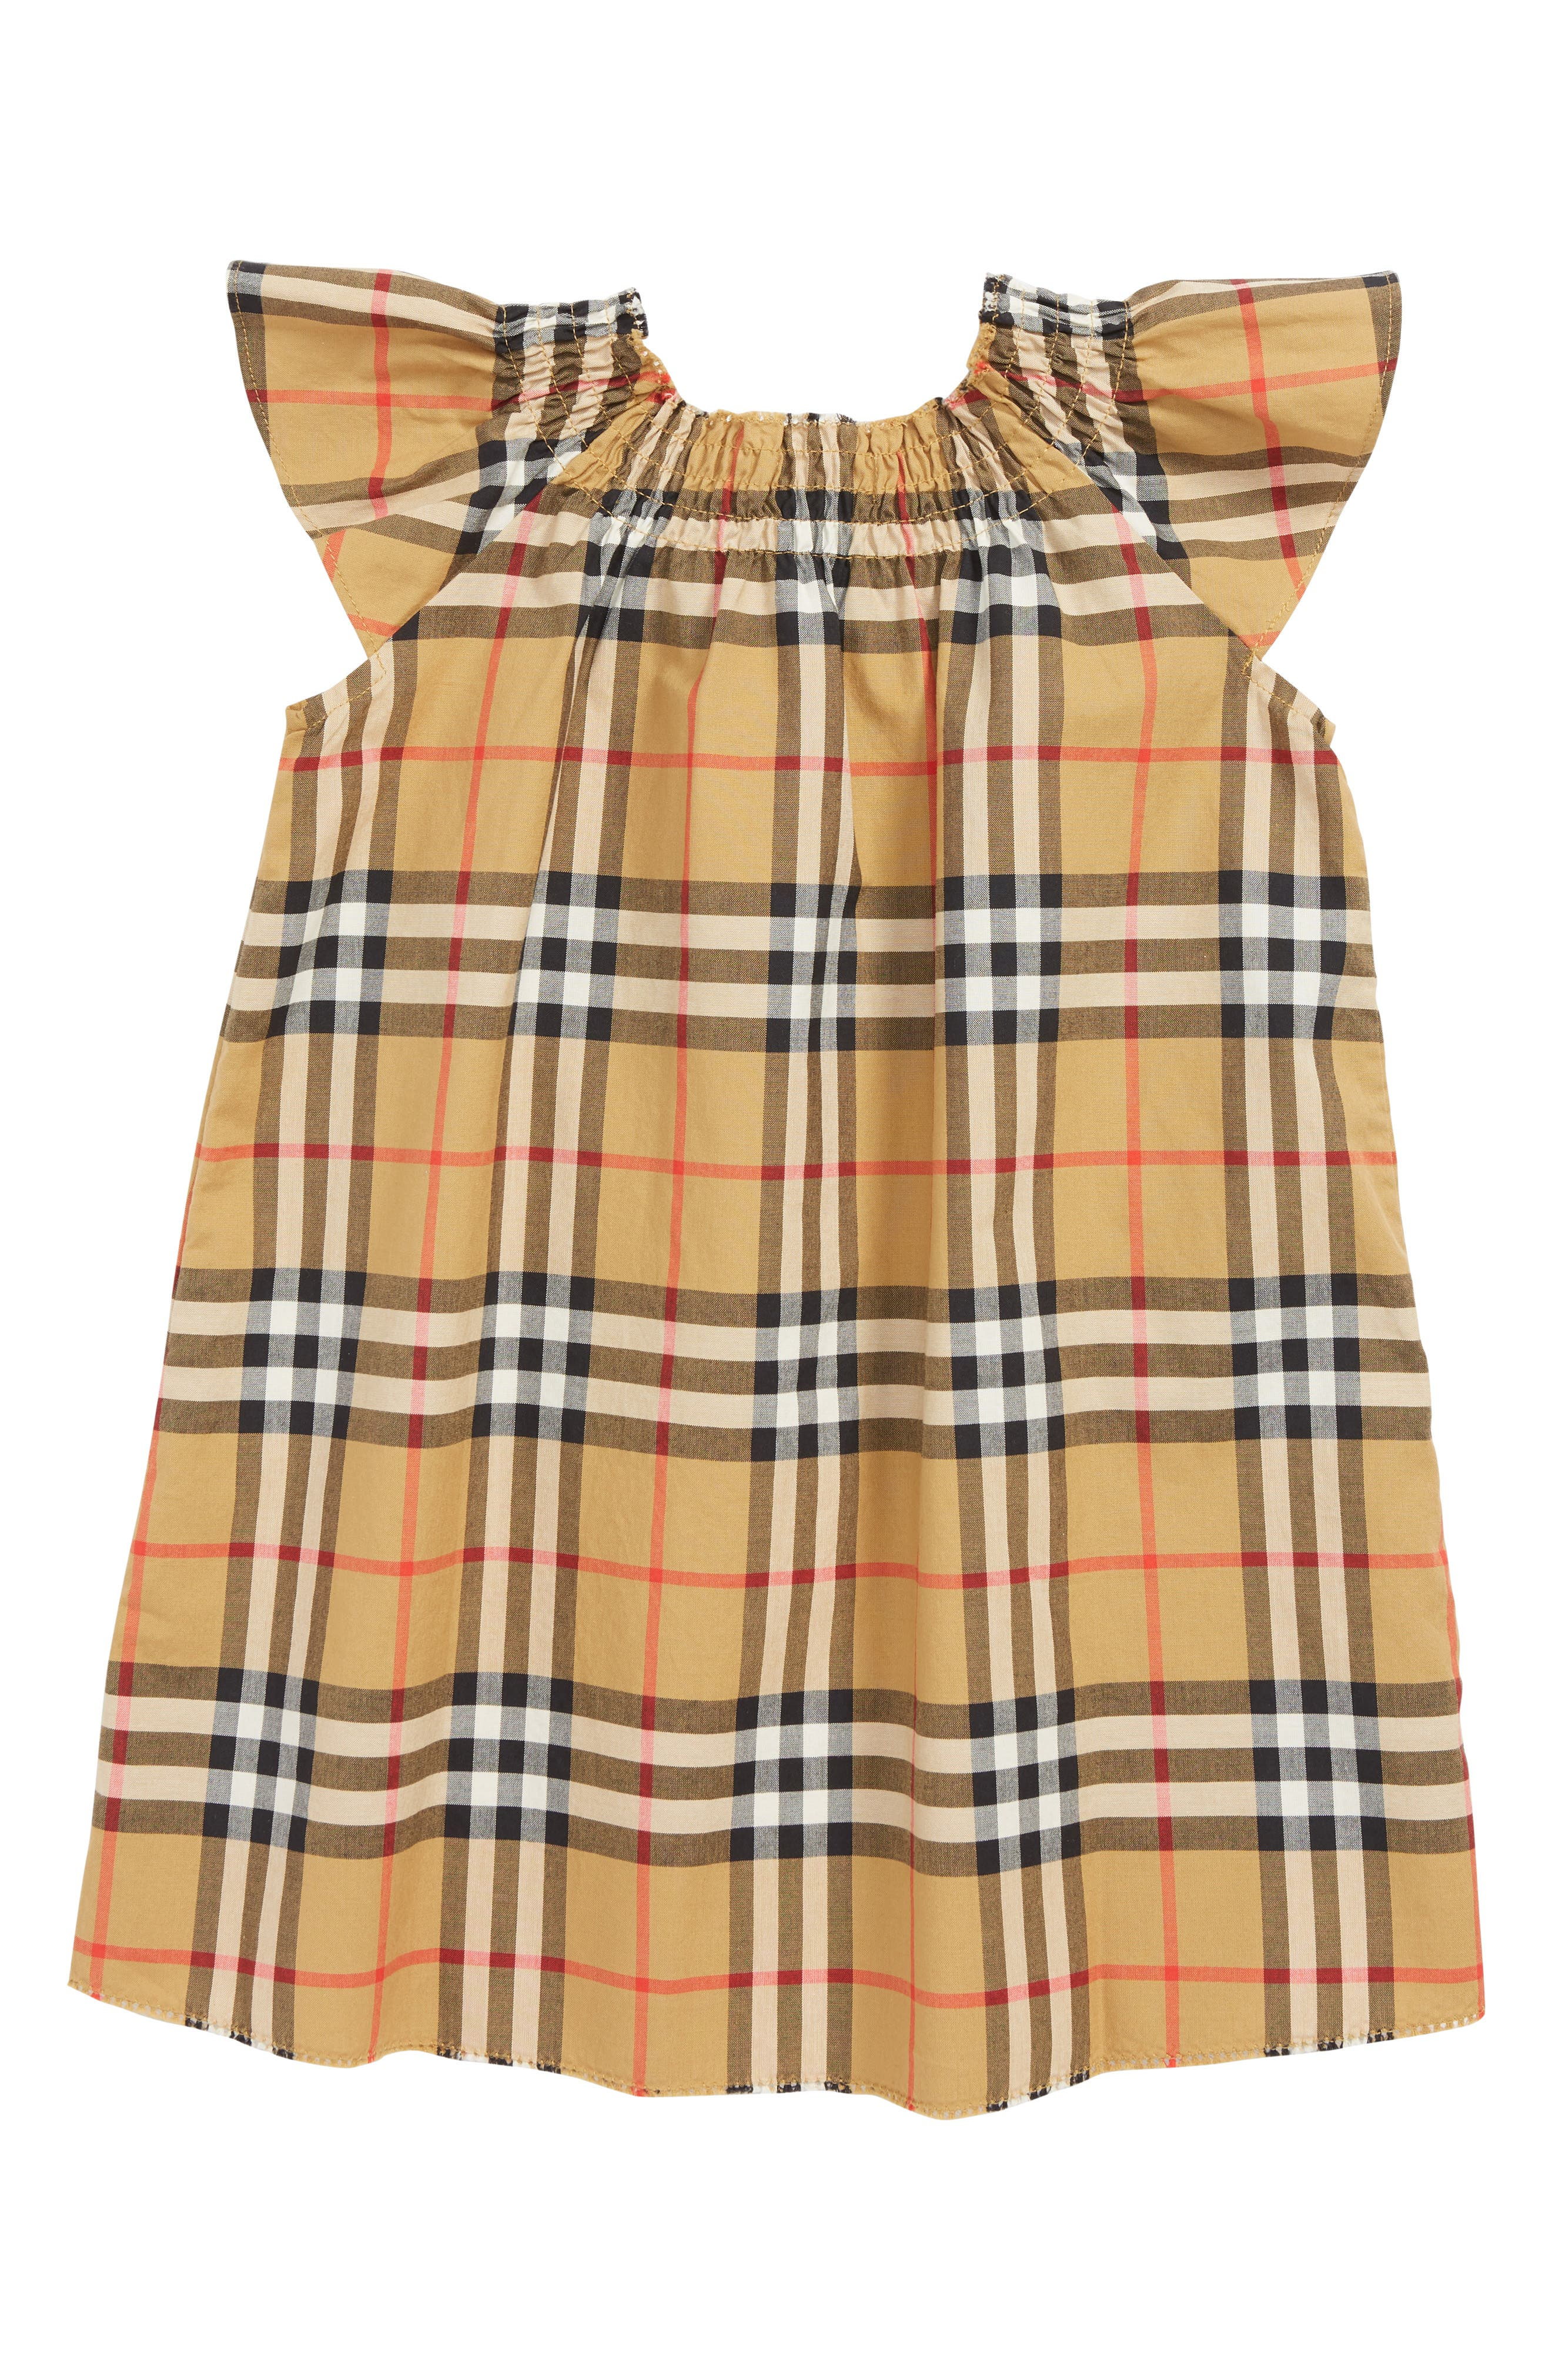 0bbd6e17b045c Burberry for Kids  Clothing   Accessories